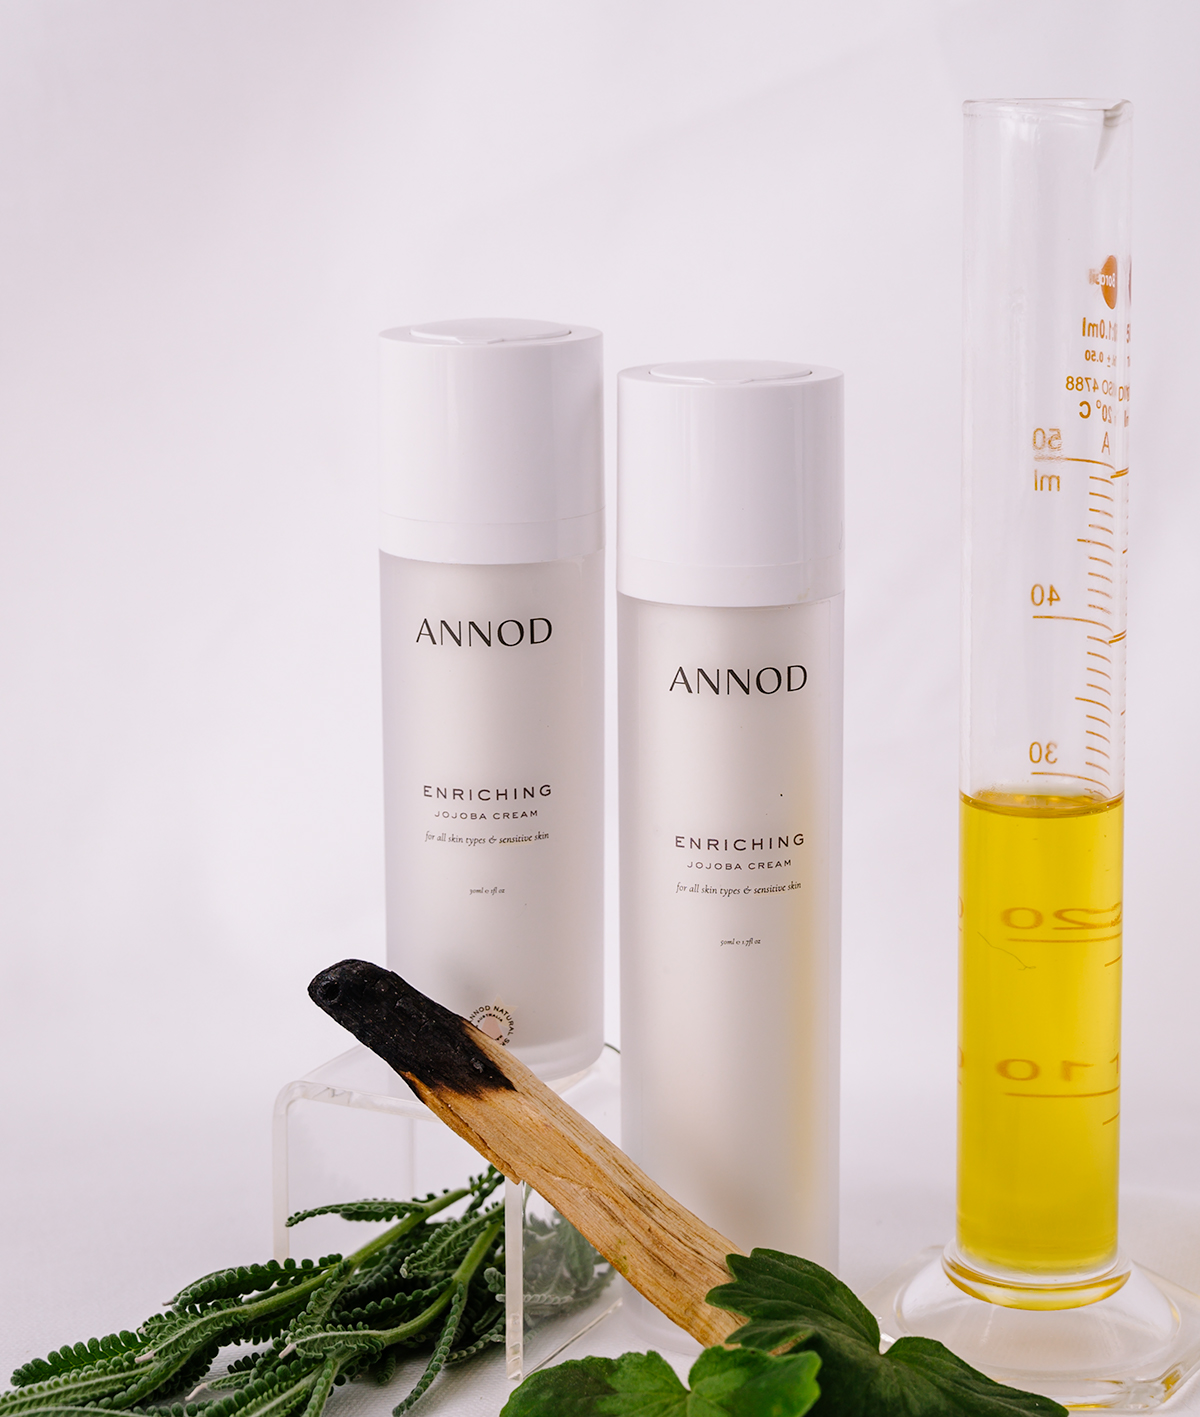 A set consisting a 30 ml and 50ml of Enriching Jojoba Cream with natural ingredients